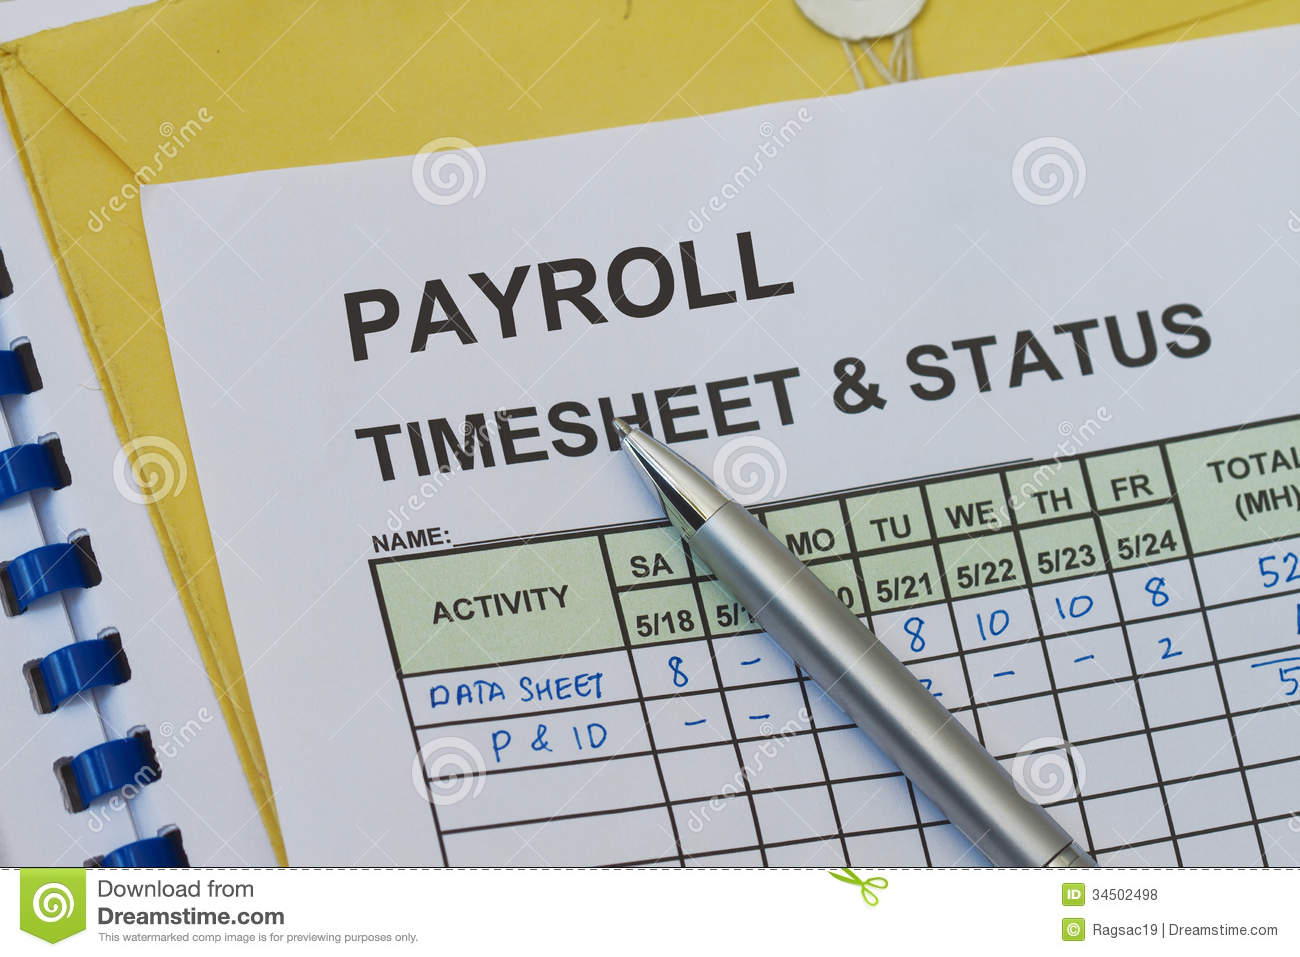 Payroll timesheet stock photo  Image of project  week   34502498 Payroll timesheet